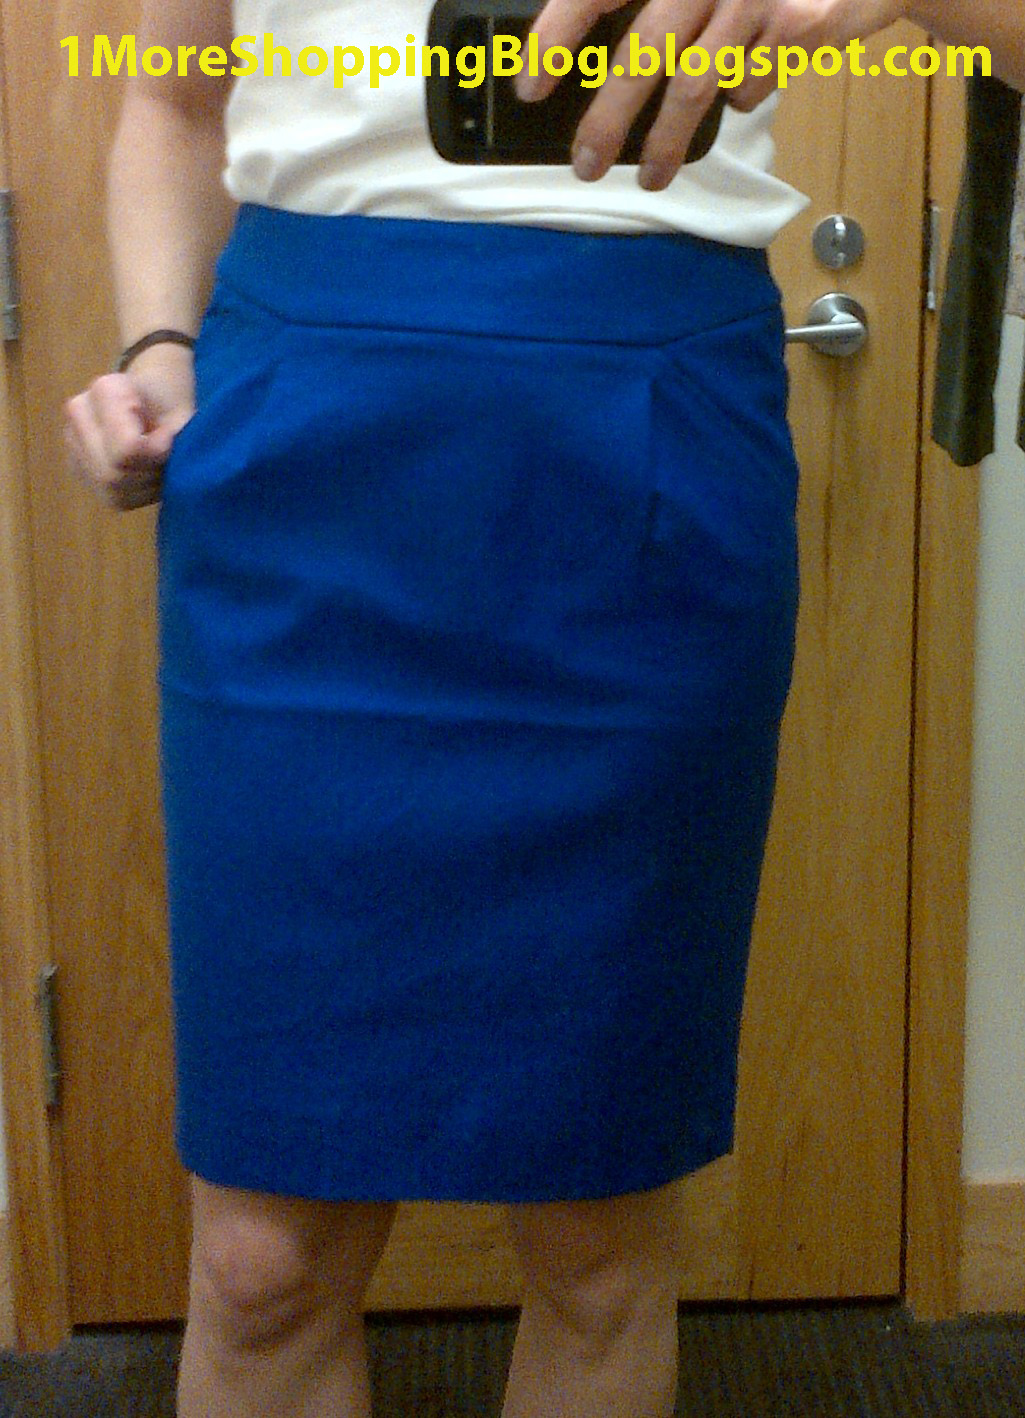 0661df00c0 Factory Double-Serge Pencil Skirt size 2 in 'brilliant blue' fits like the  No. 2 Pencil Skirts in Double-Serge Cotton from JC that I tried before.